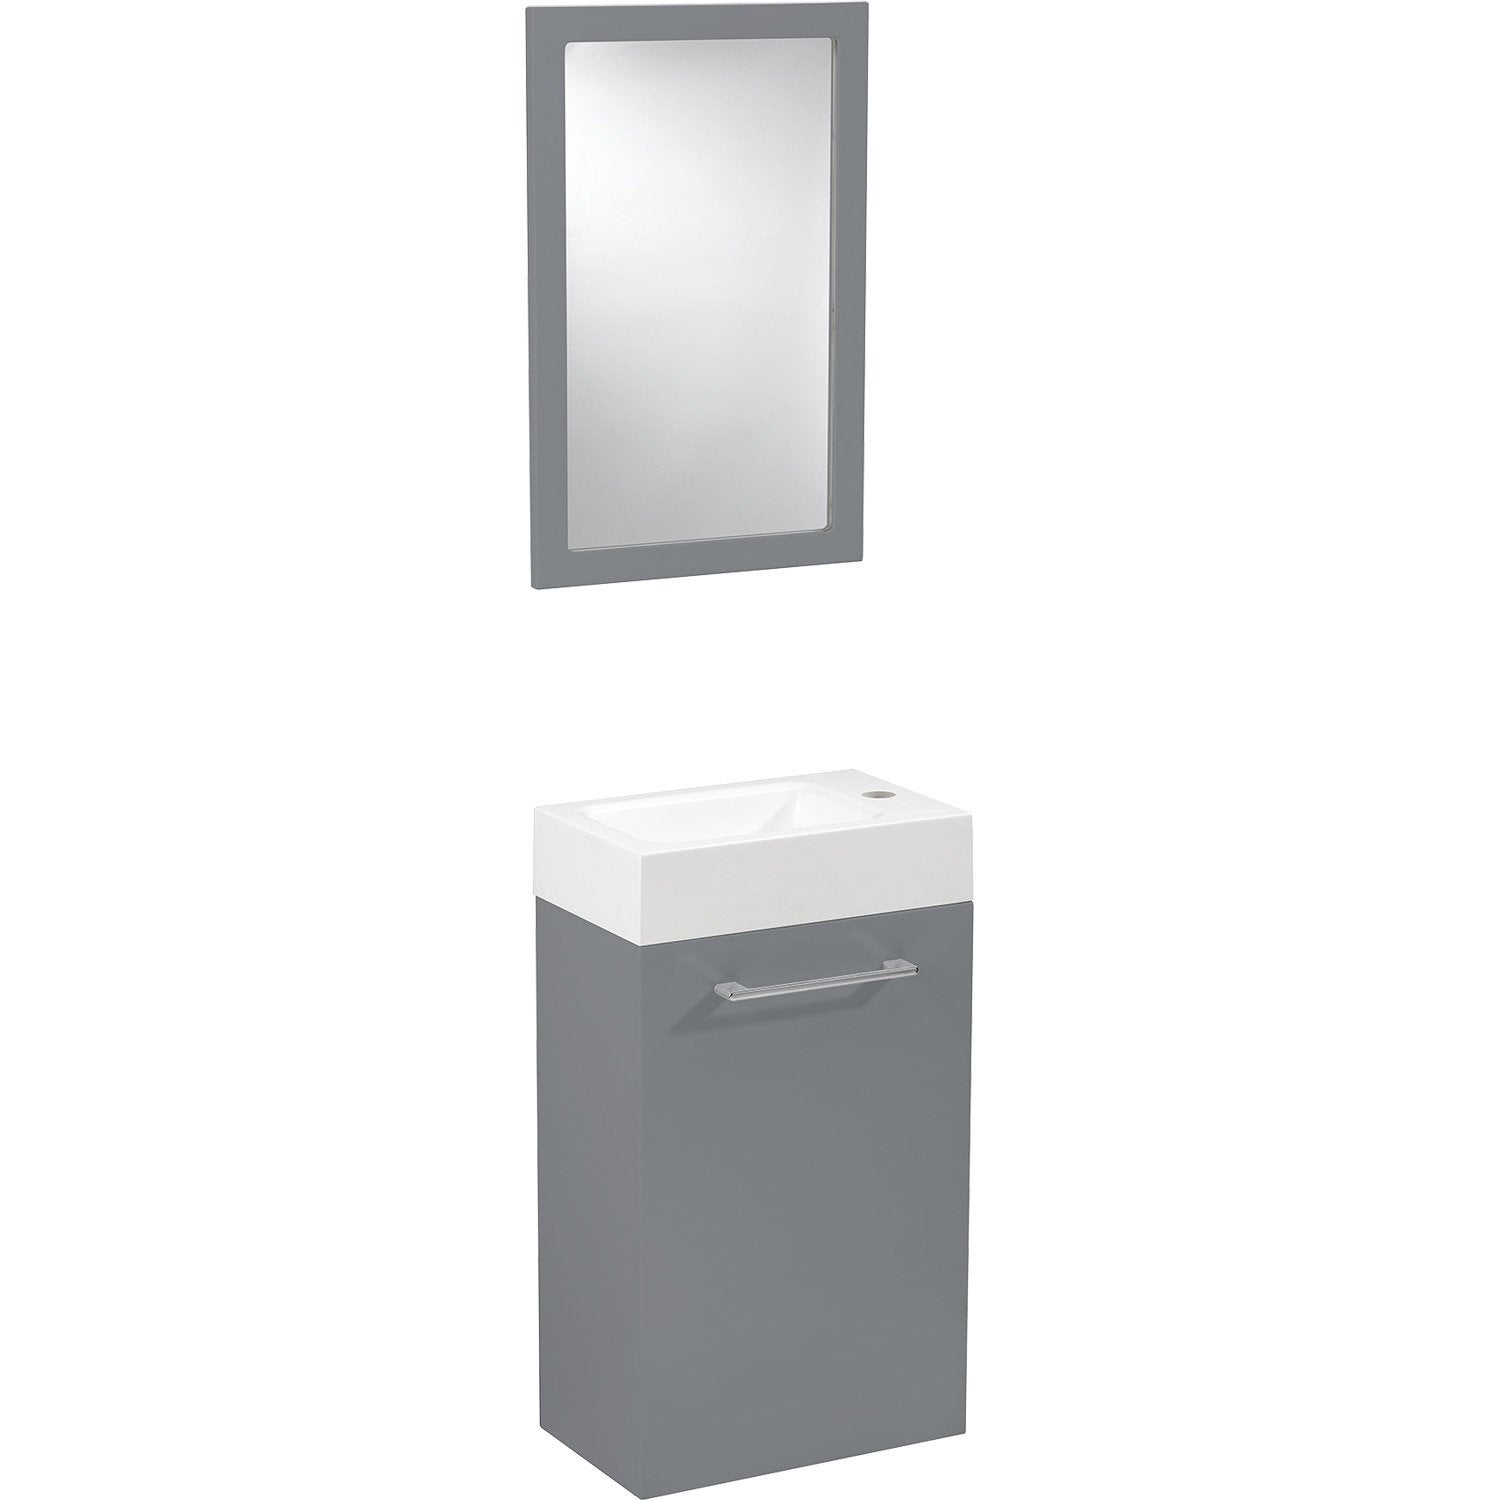 Meuble lave mains avec miroir gris galet n 3 sensea remix for Petit toilette leroy merlin